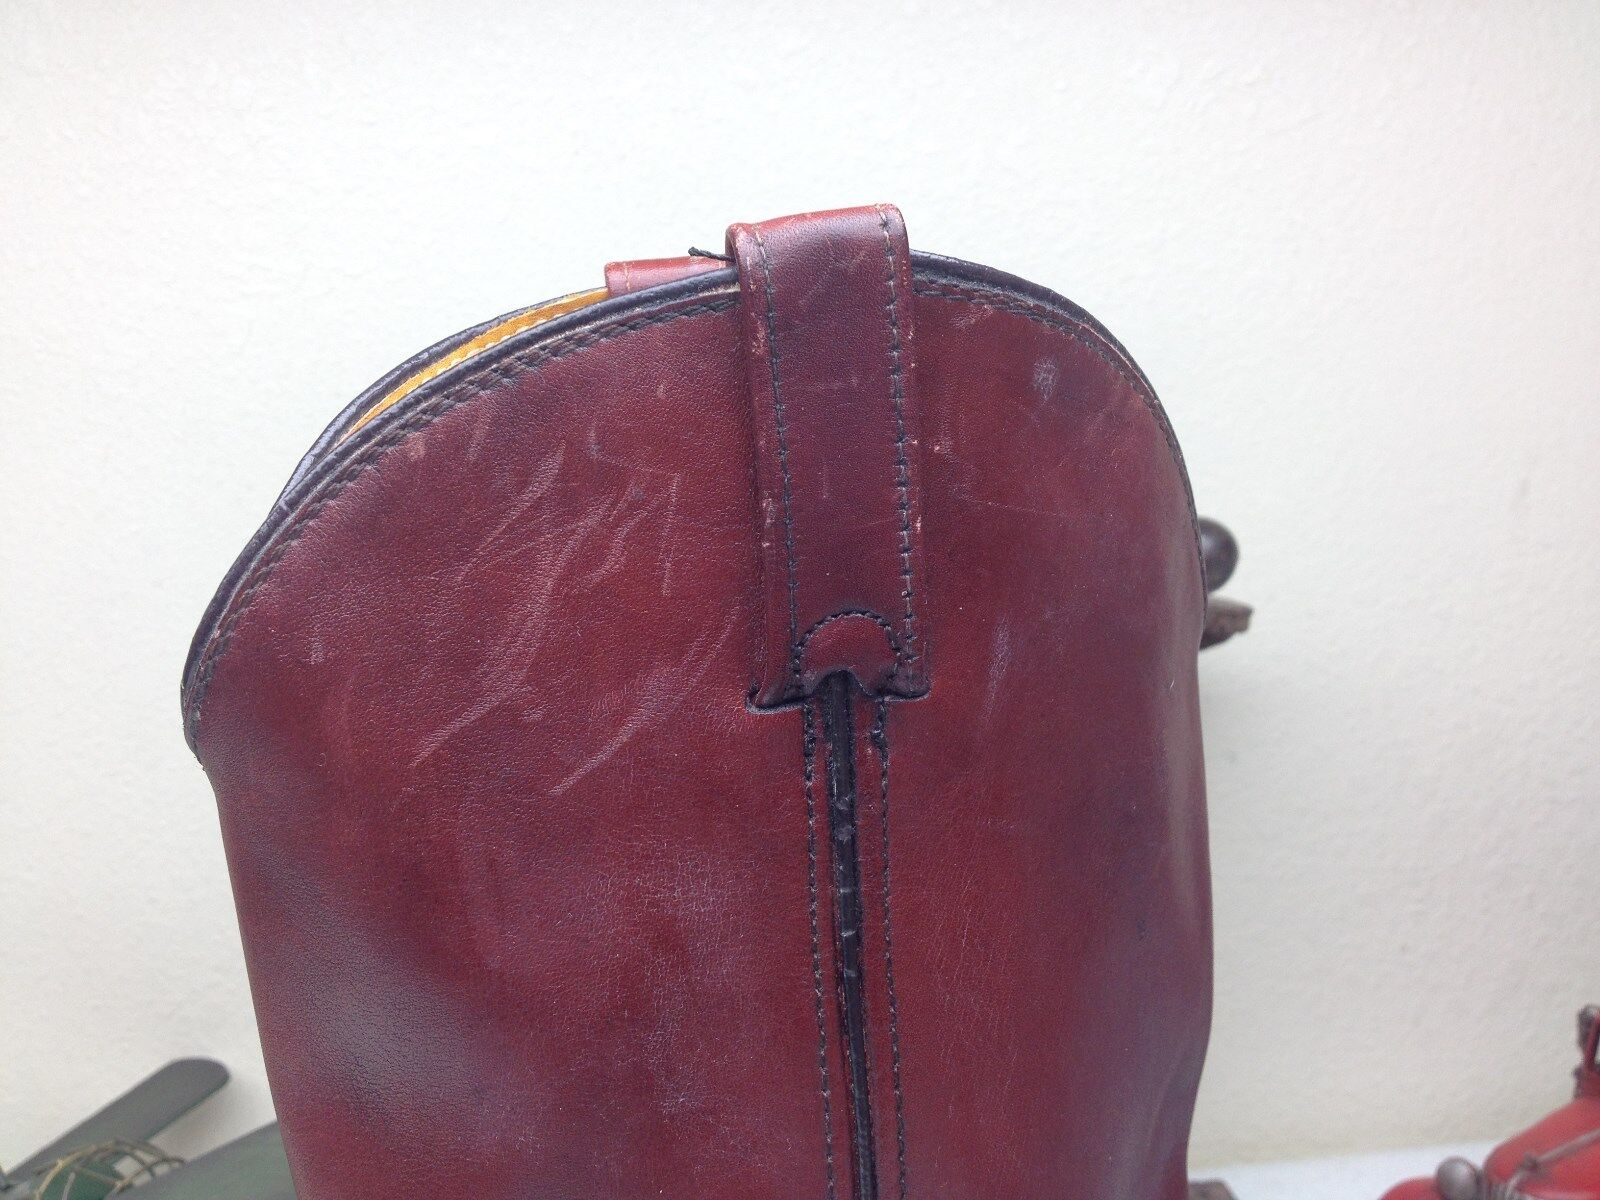 RICHLAND DOUBLE H DISTRESSED DISTRESSED DISTRESSED BURGUNDY LEATHER Stiefel Größe 9 EE daa4e5